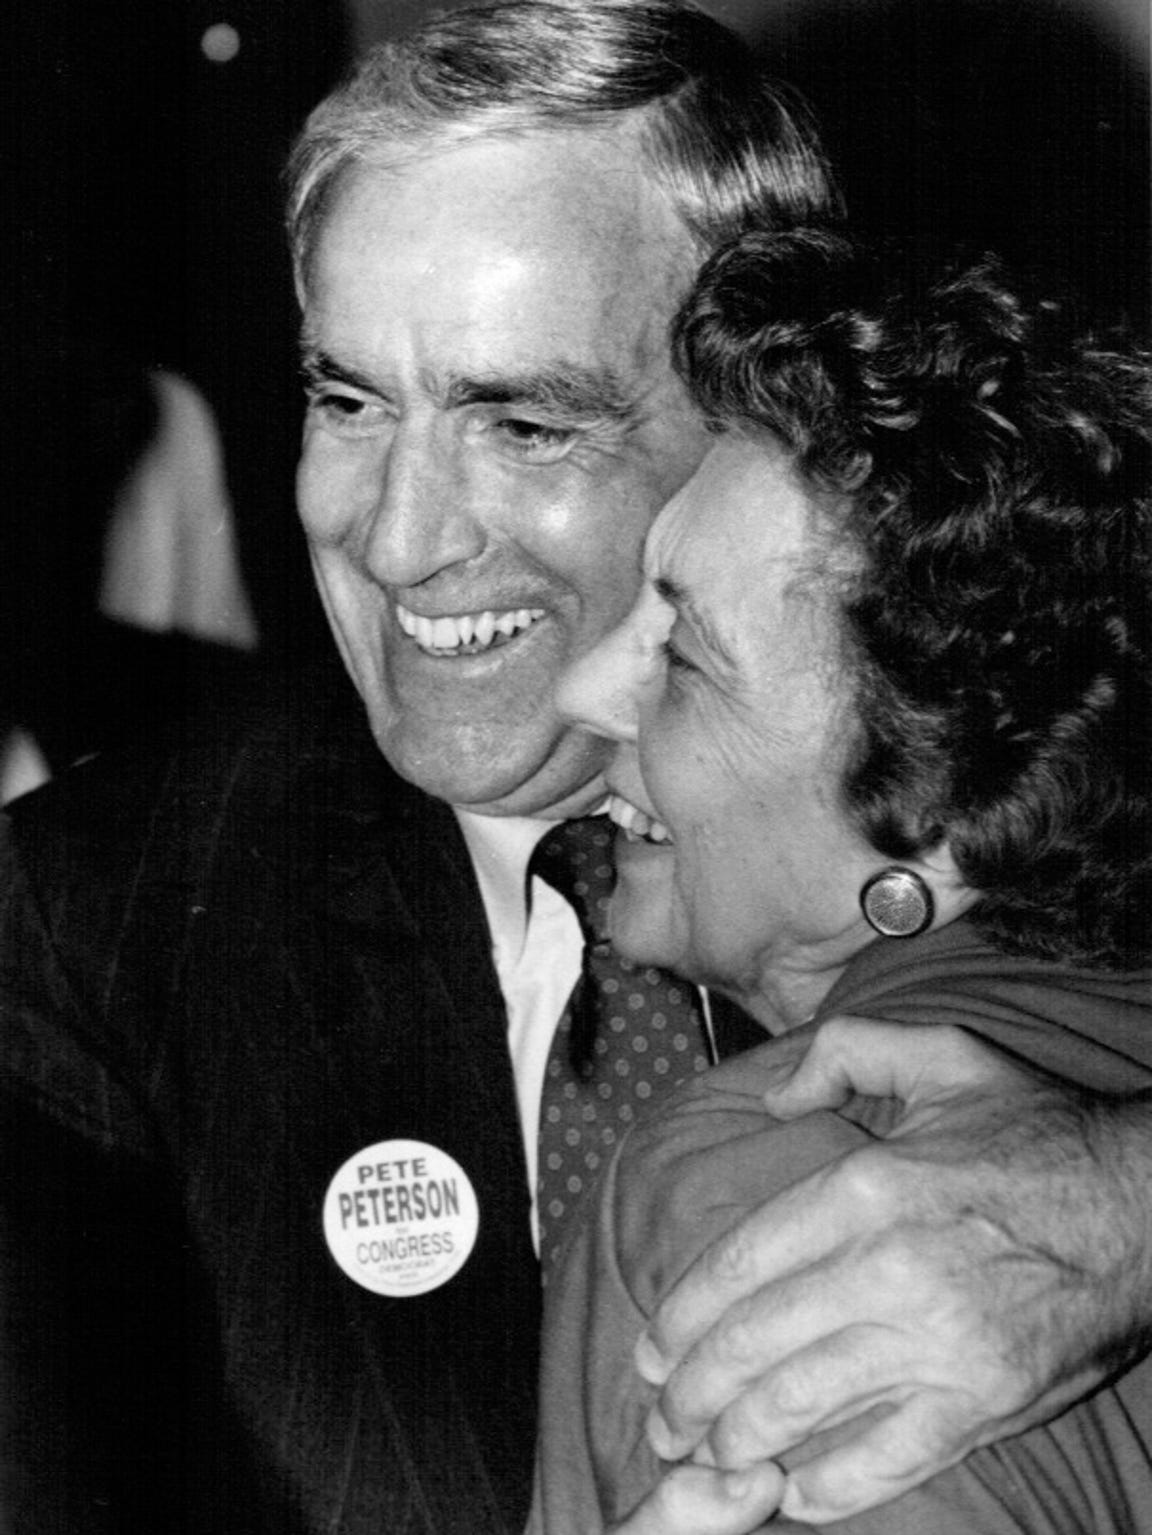 Peterson hugs a supporter during a campaign victory